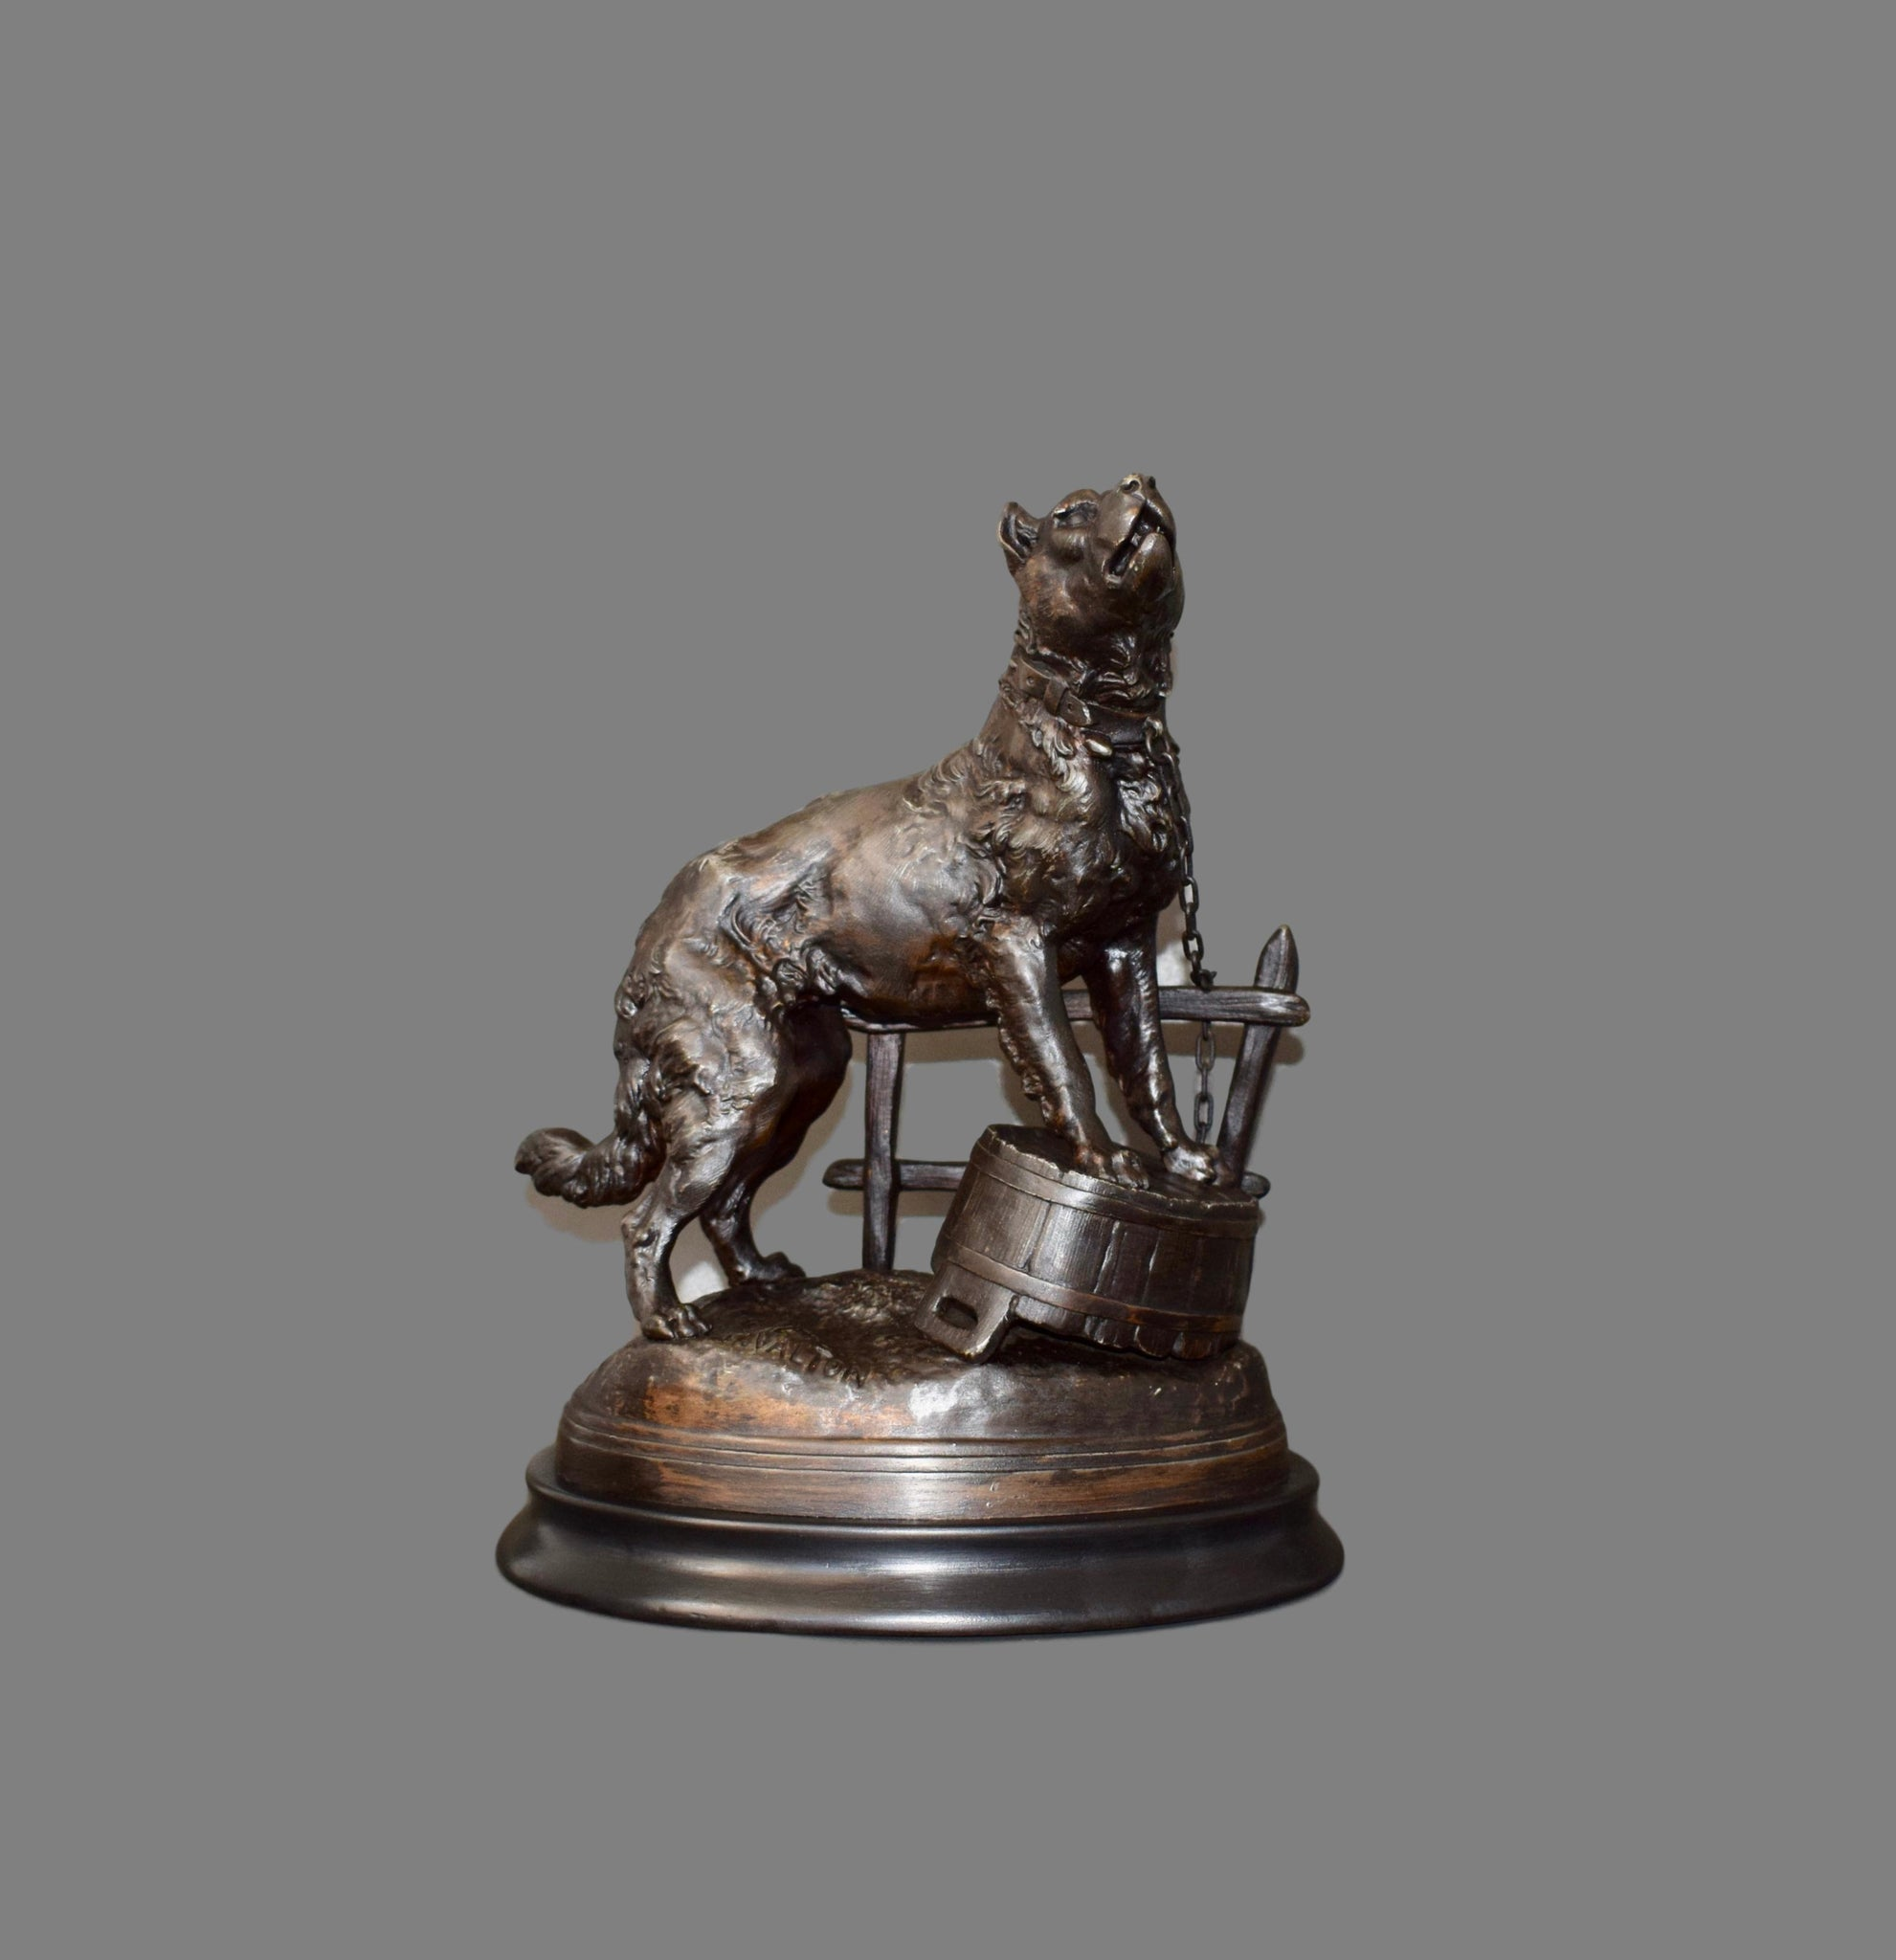 Antique French Bronze Patina Spelter Dog Sculpture Figurine Statue of a Howling Mastiff Fence by Charles Valton Animalier Style